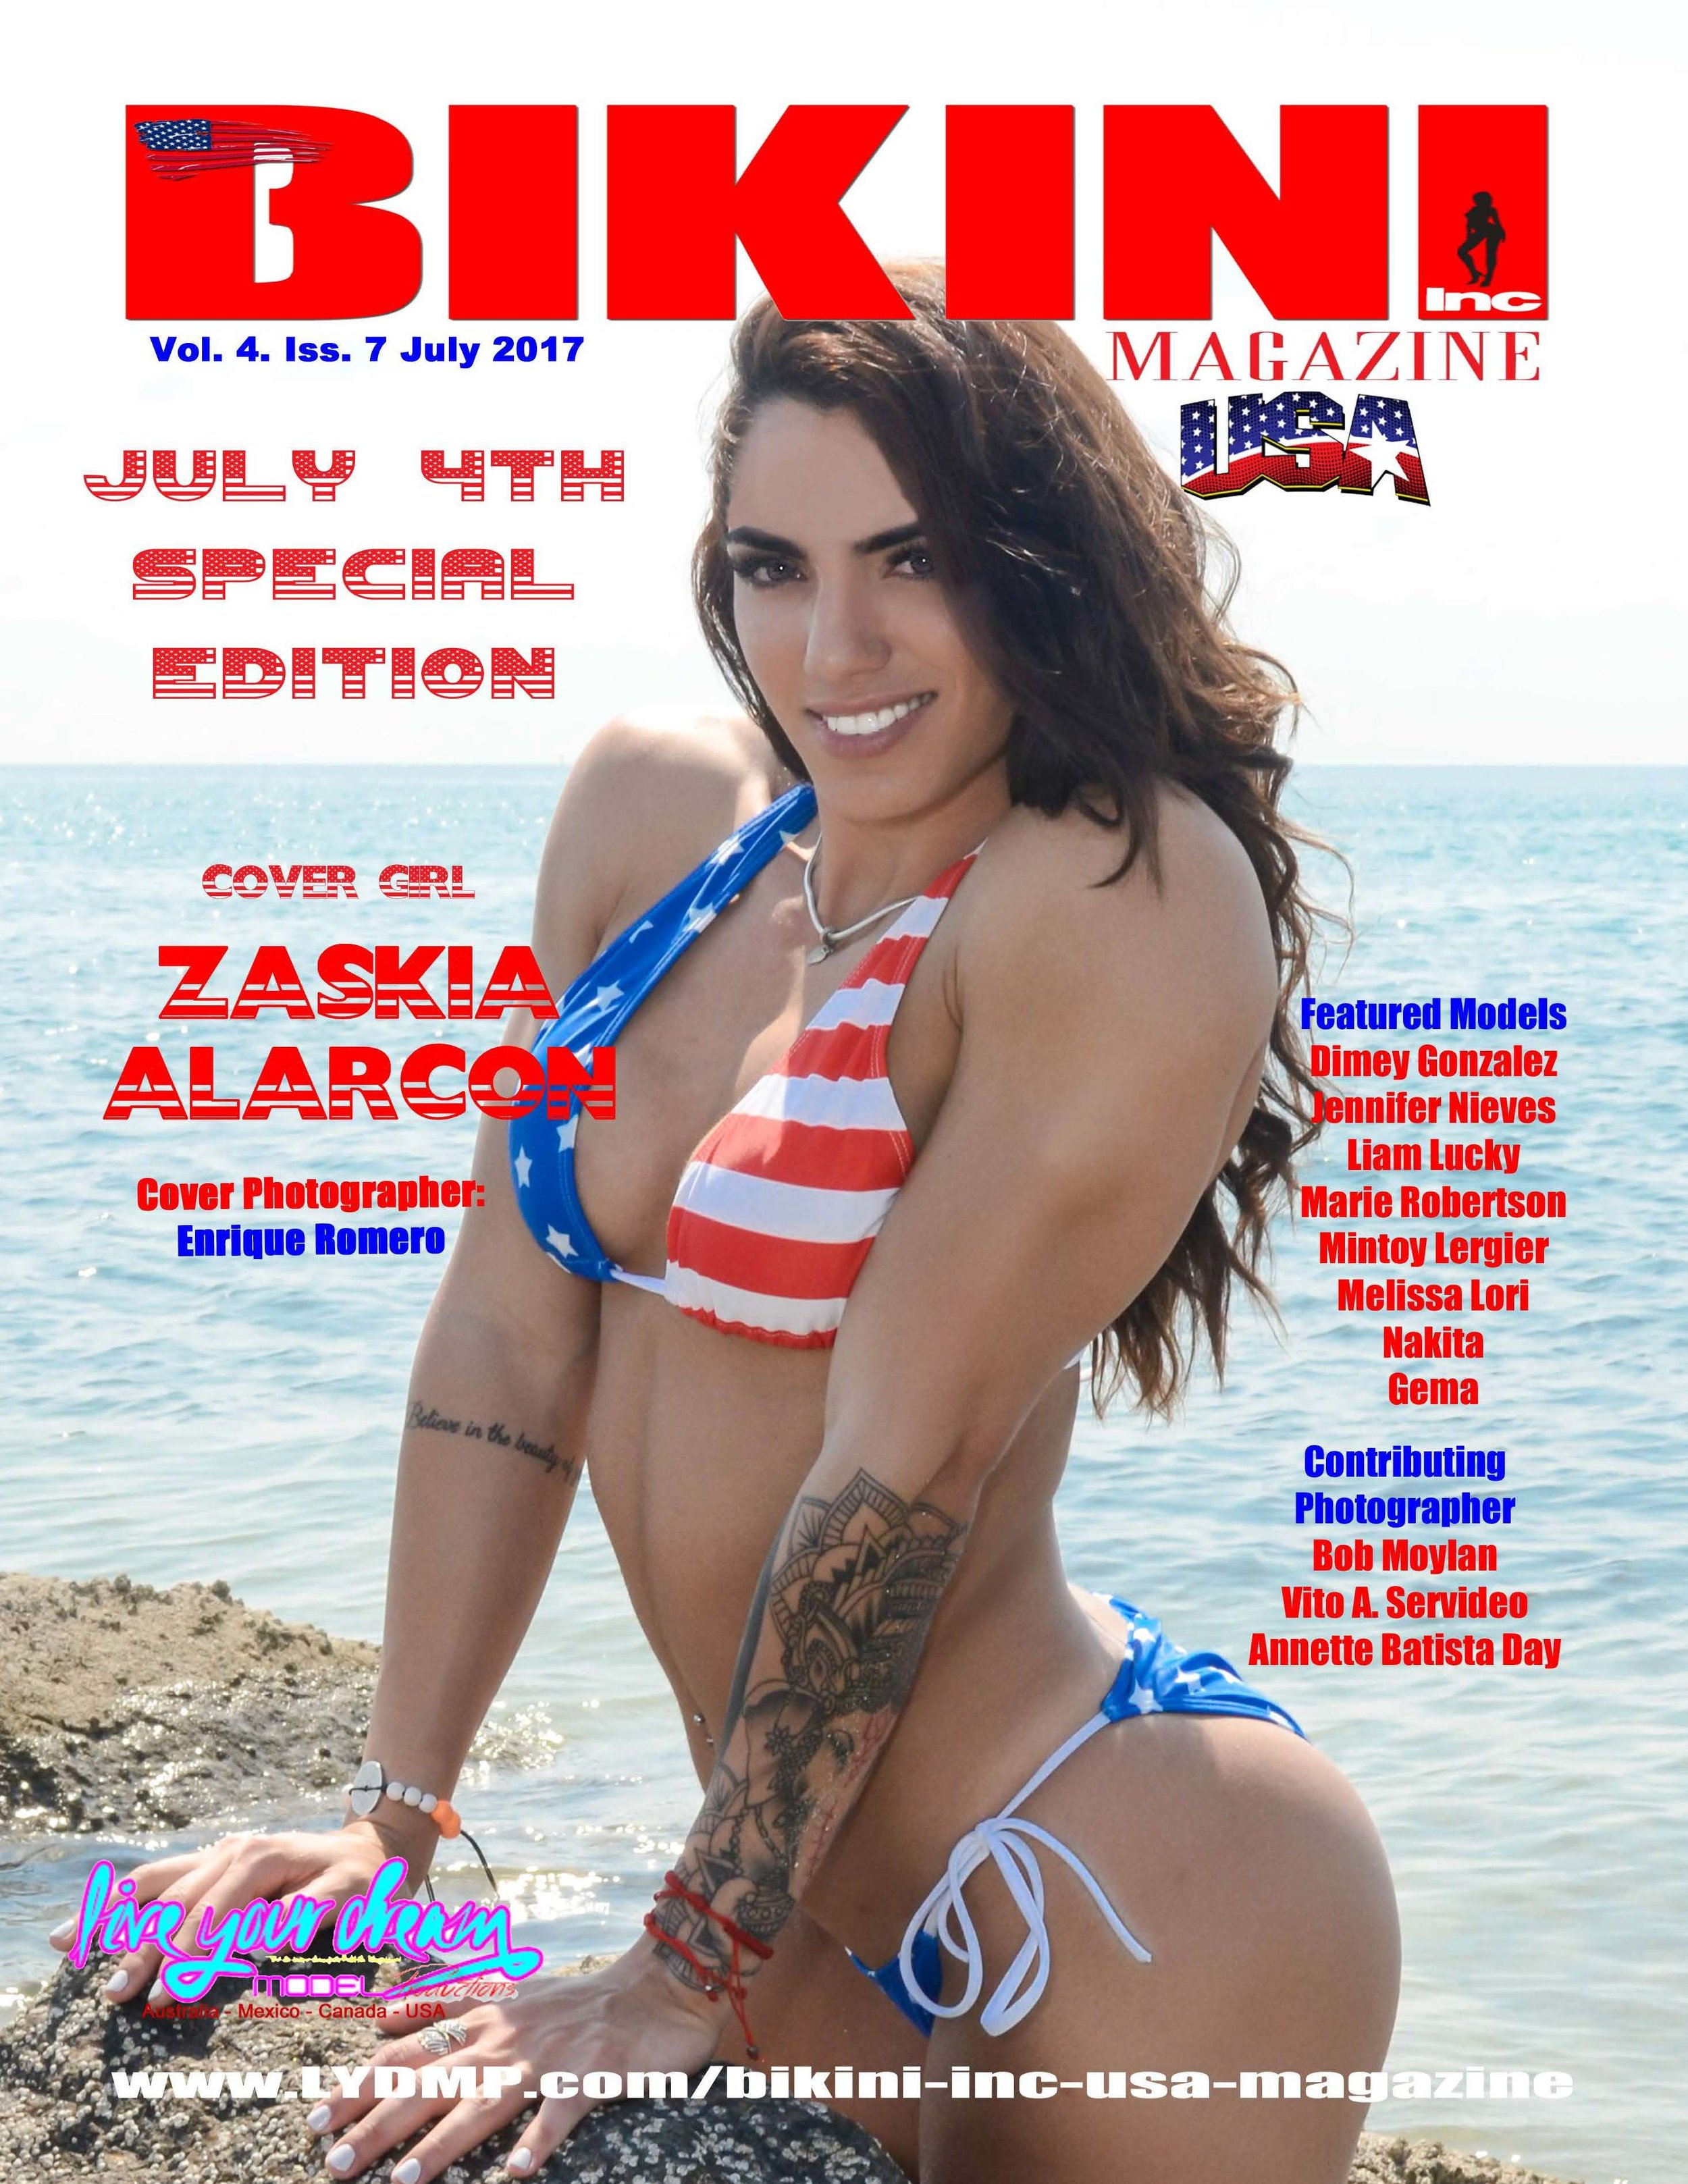 01-Bikini Inc USA Magazine - July 2017-ZA.jpg